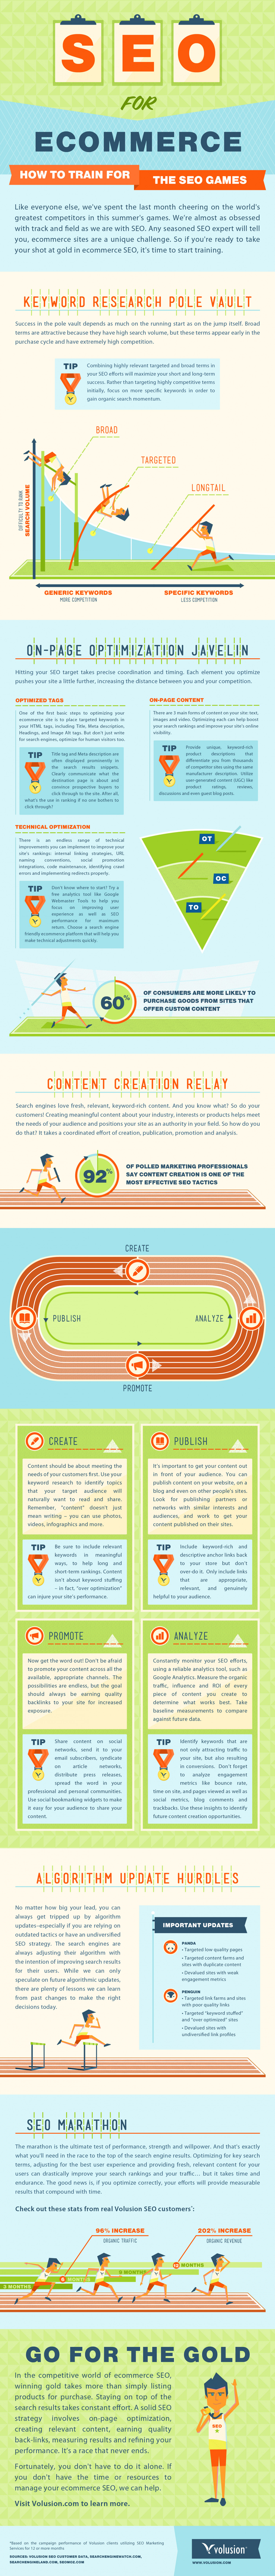 SEO for Ecommerce Infographic